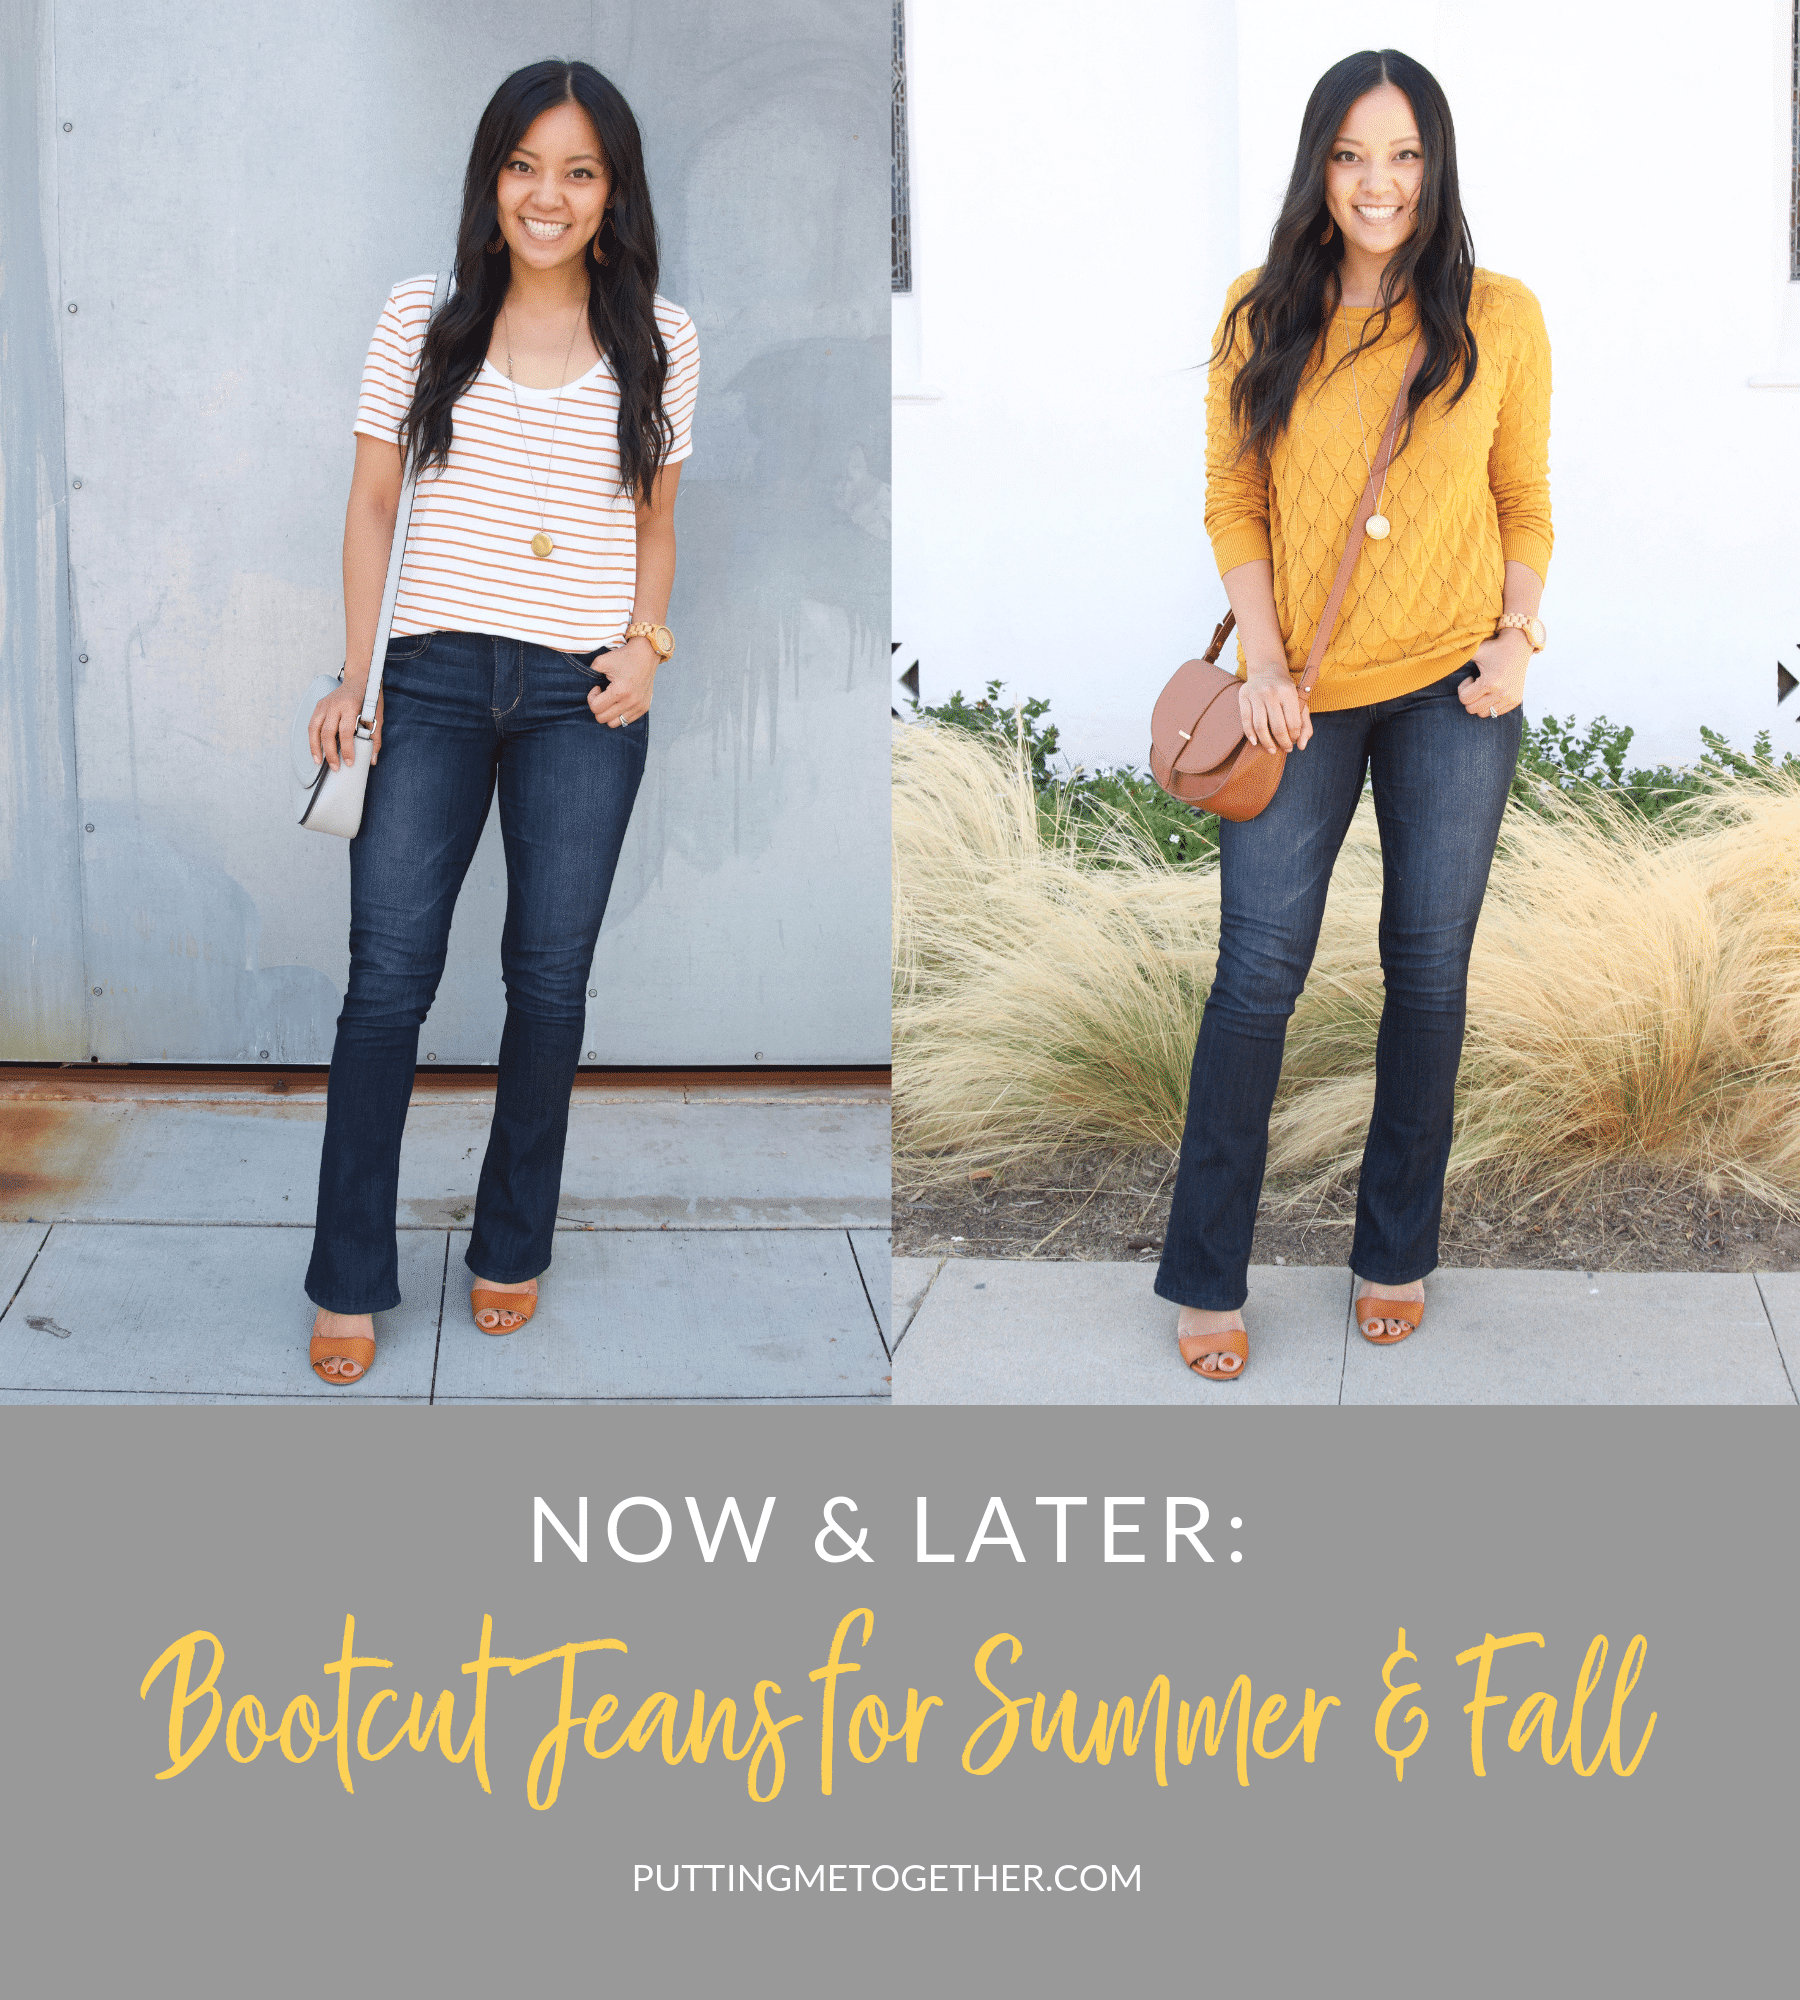 Now & Later Bootcut Jeans for Summer and Fall